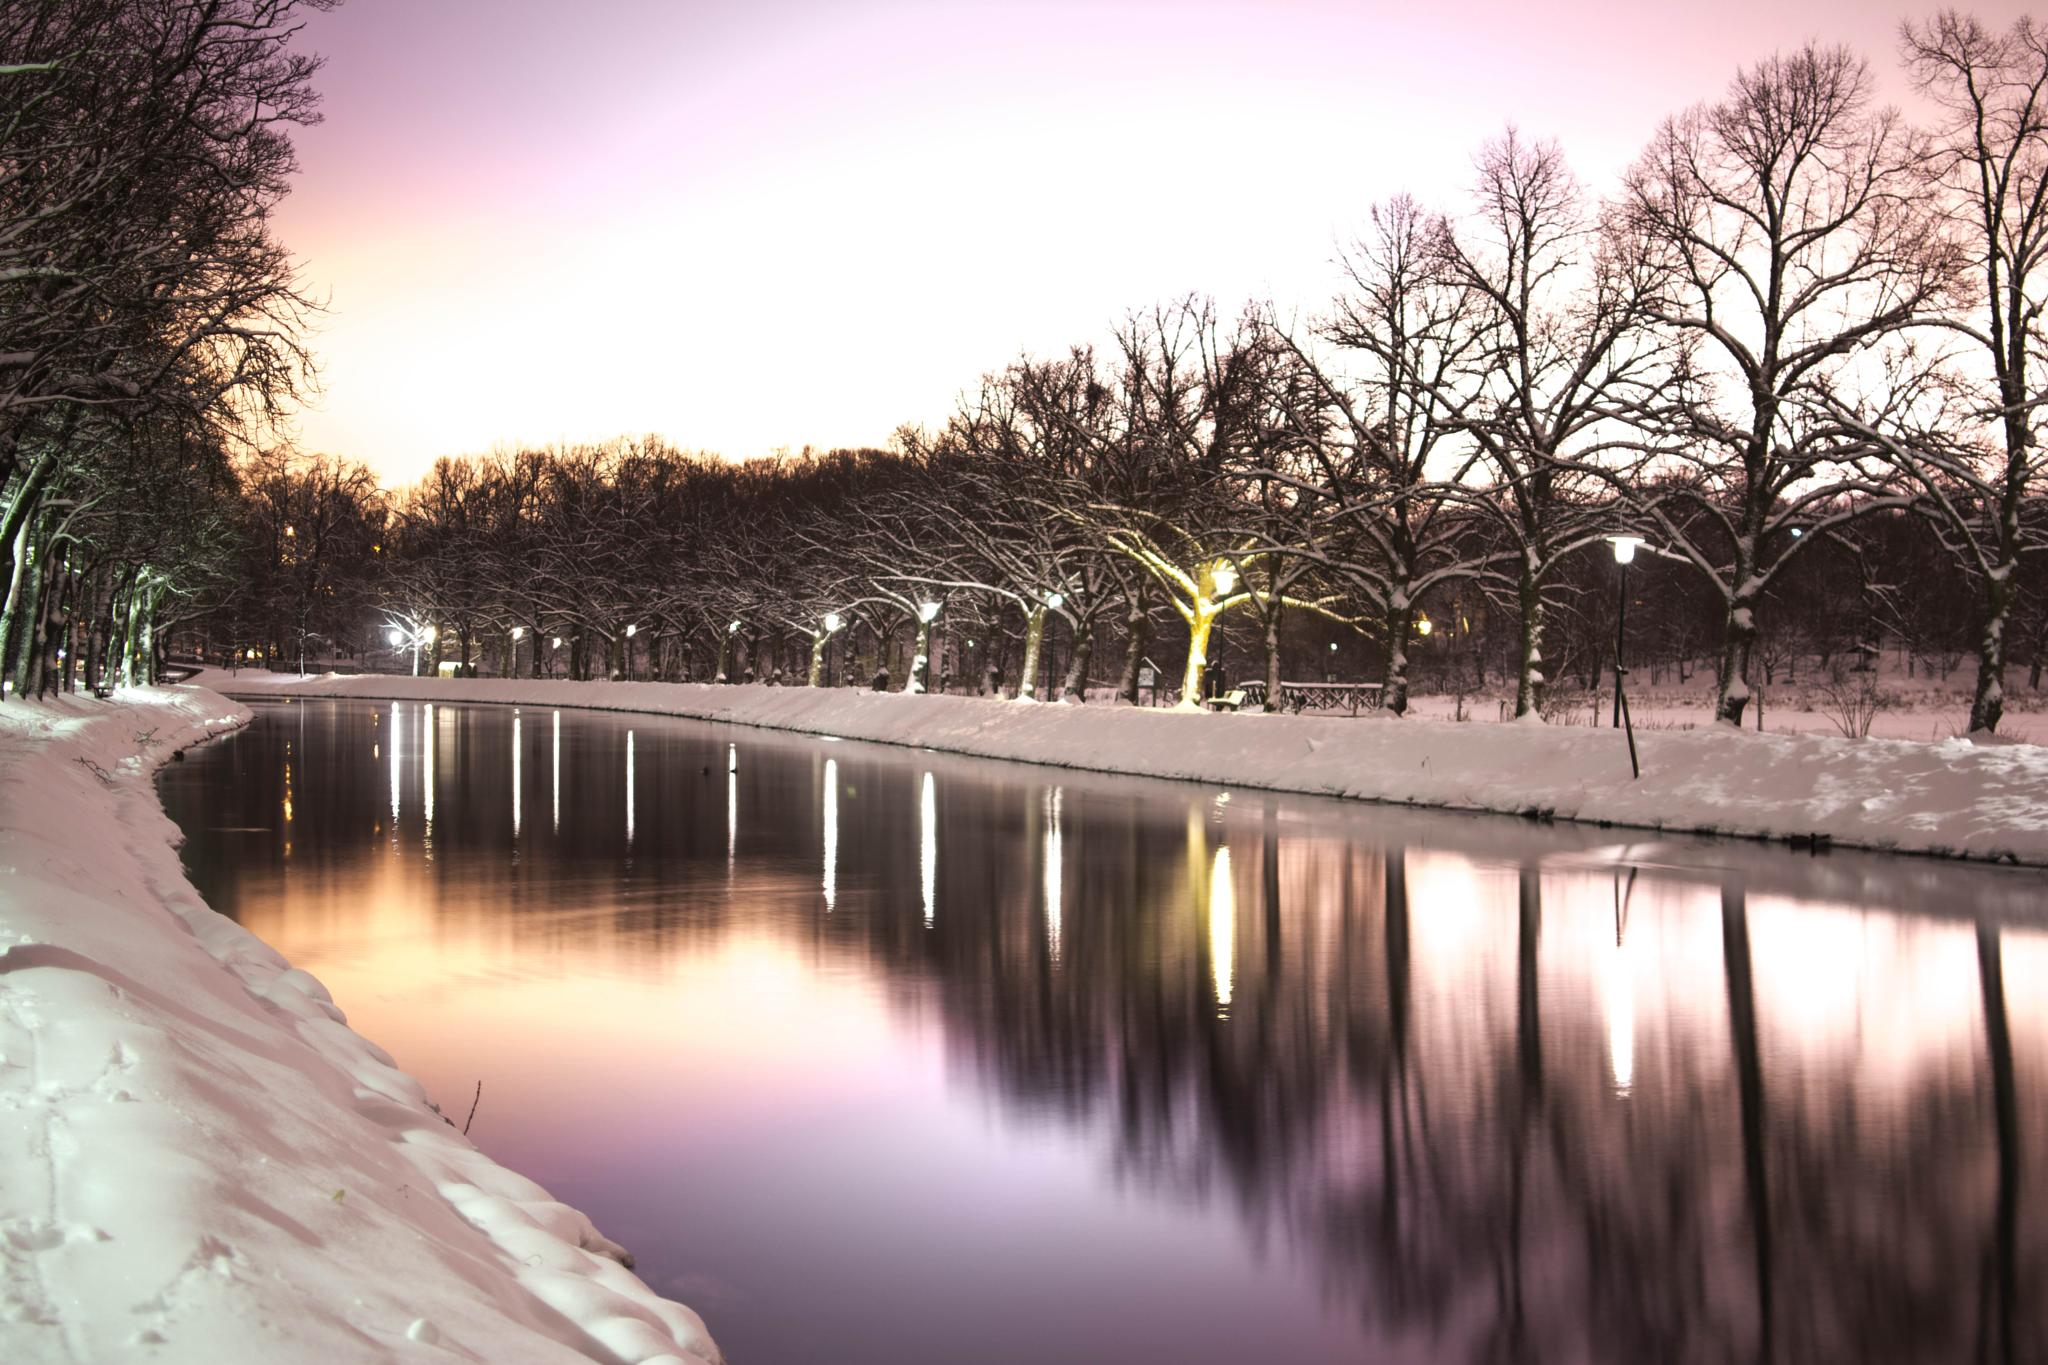 The canal by emanuel.eriksson